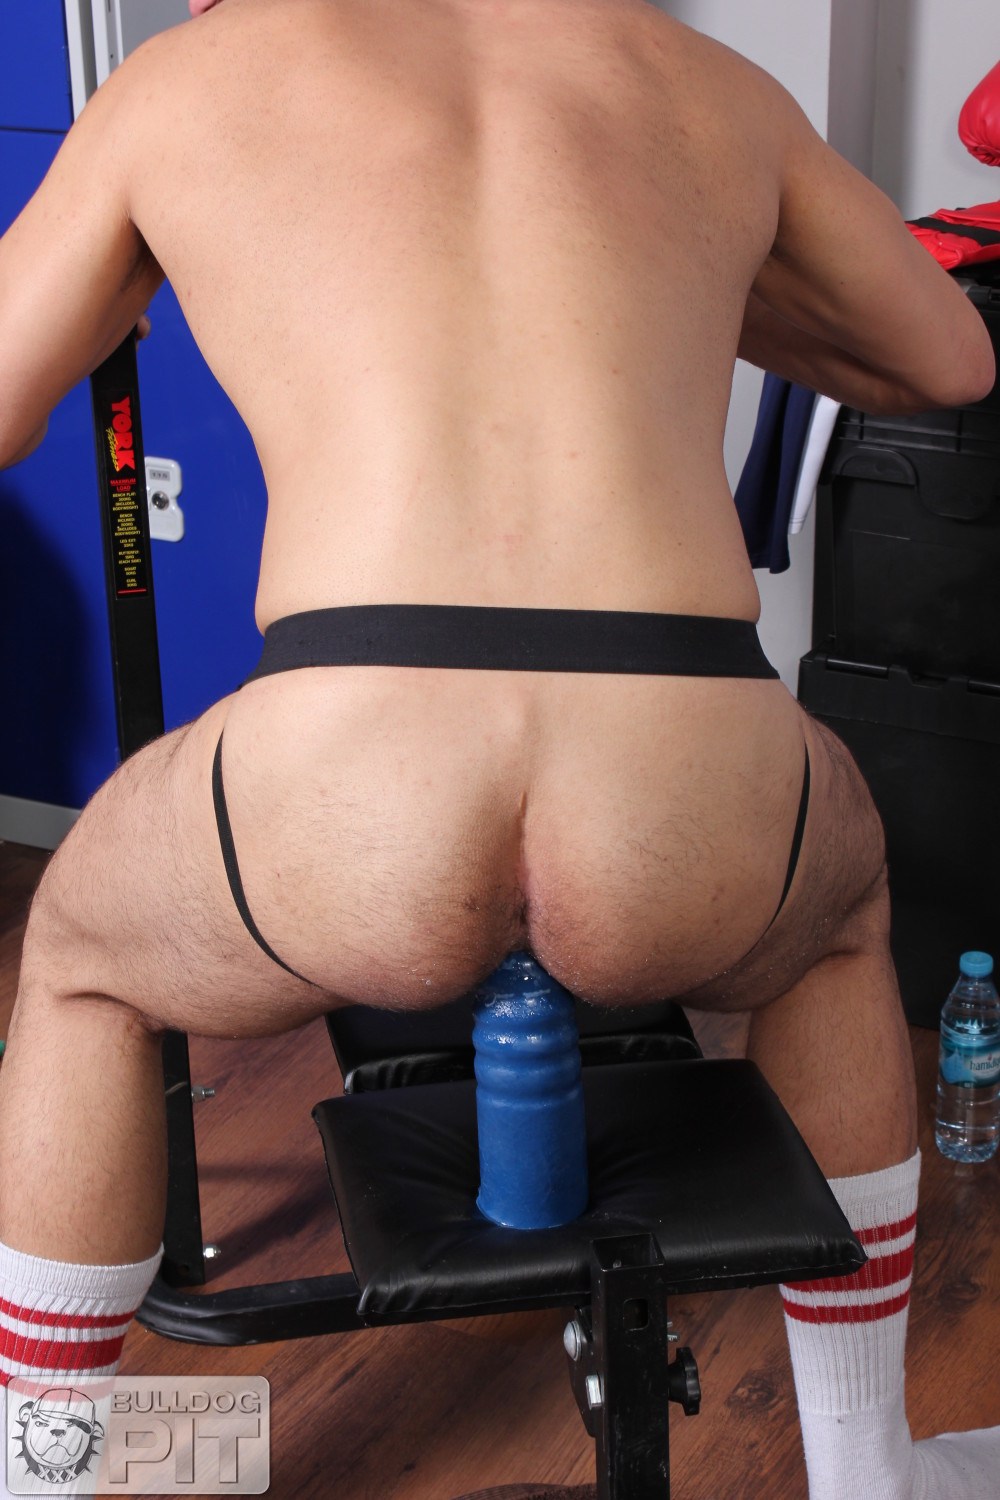 Bulldog Pit Jake Bolton Athlete Fucking Himself With A Dildo Amateur Gay Porn 14 Jake Bolton: Hung Masculine Jock Fucks Himself With Dildos